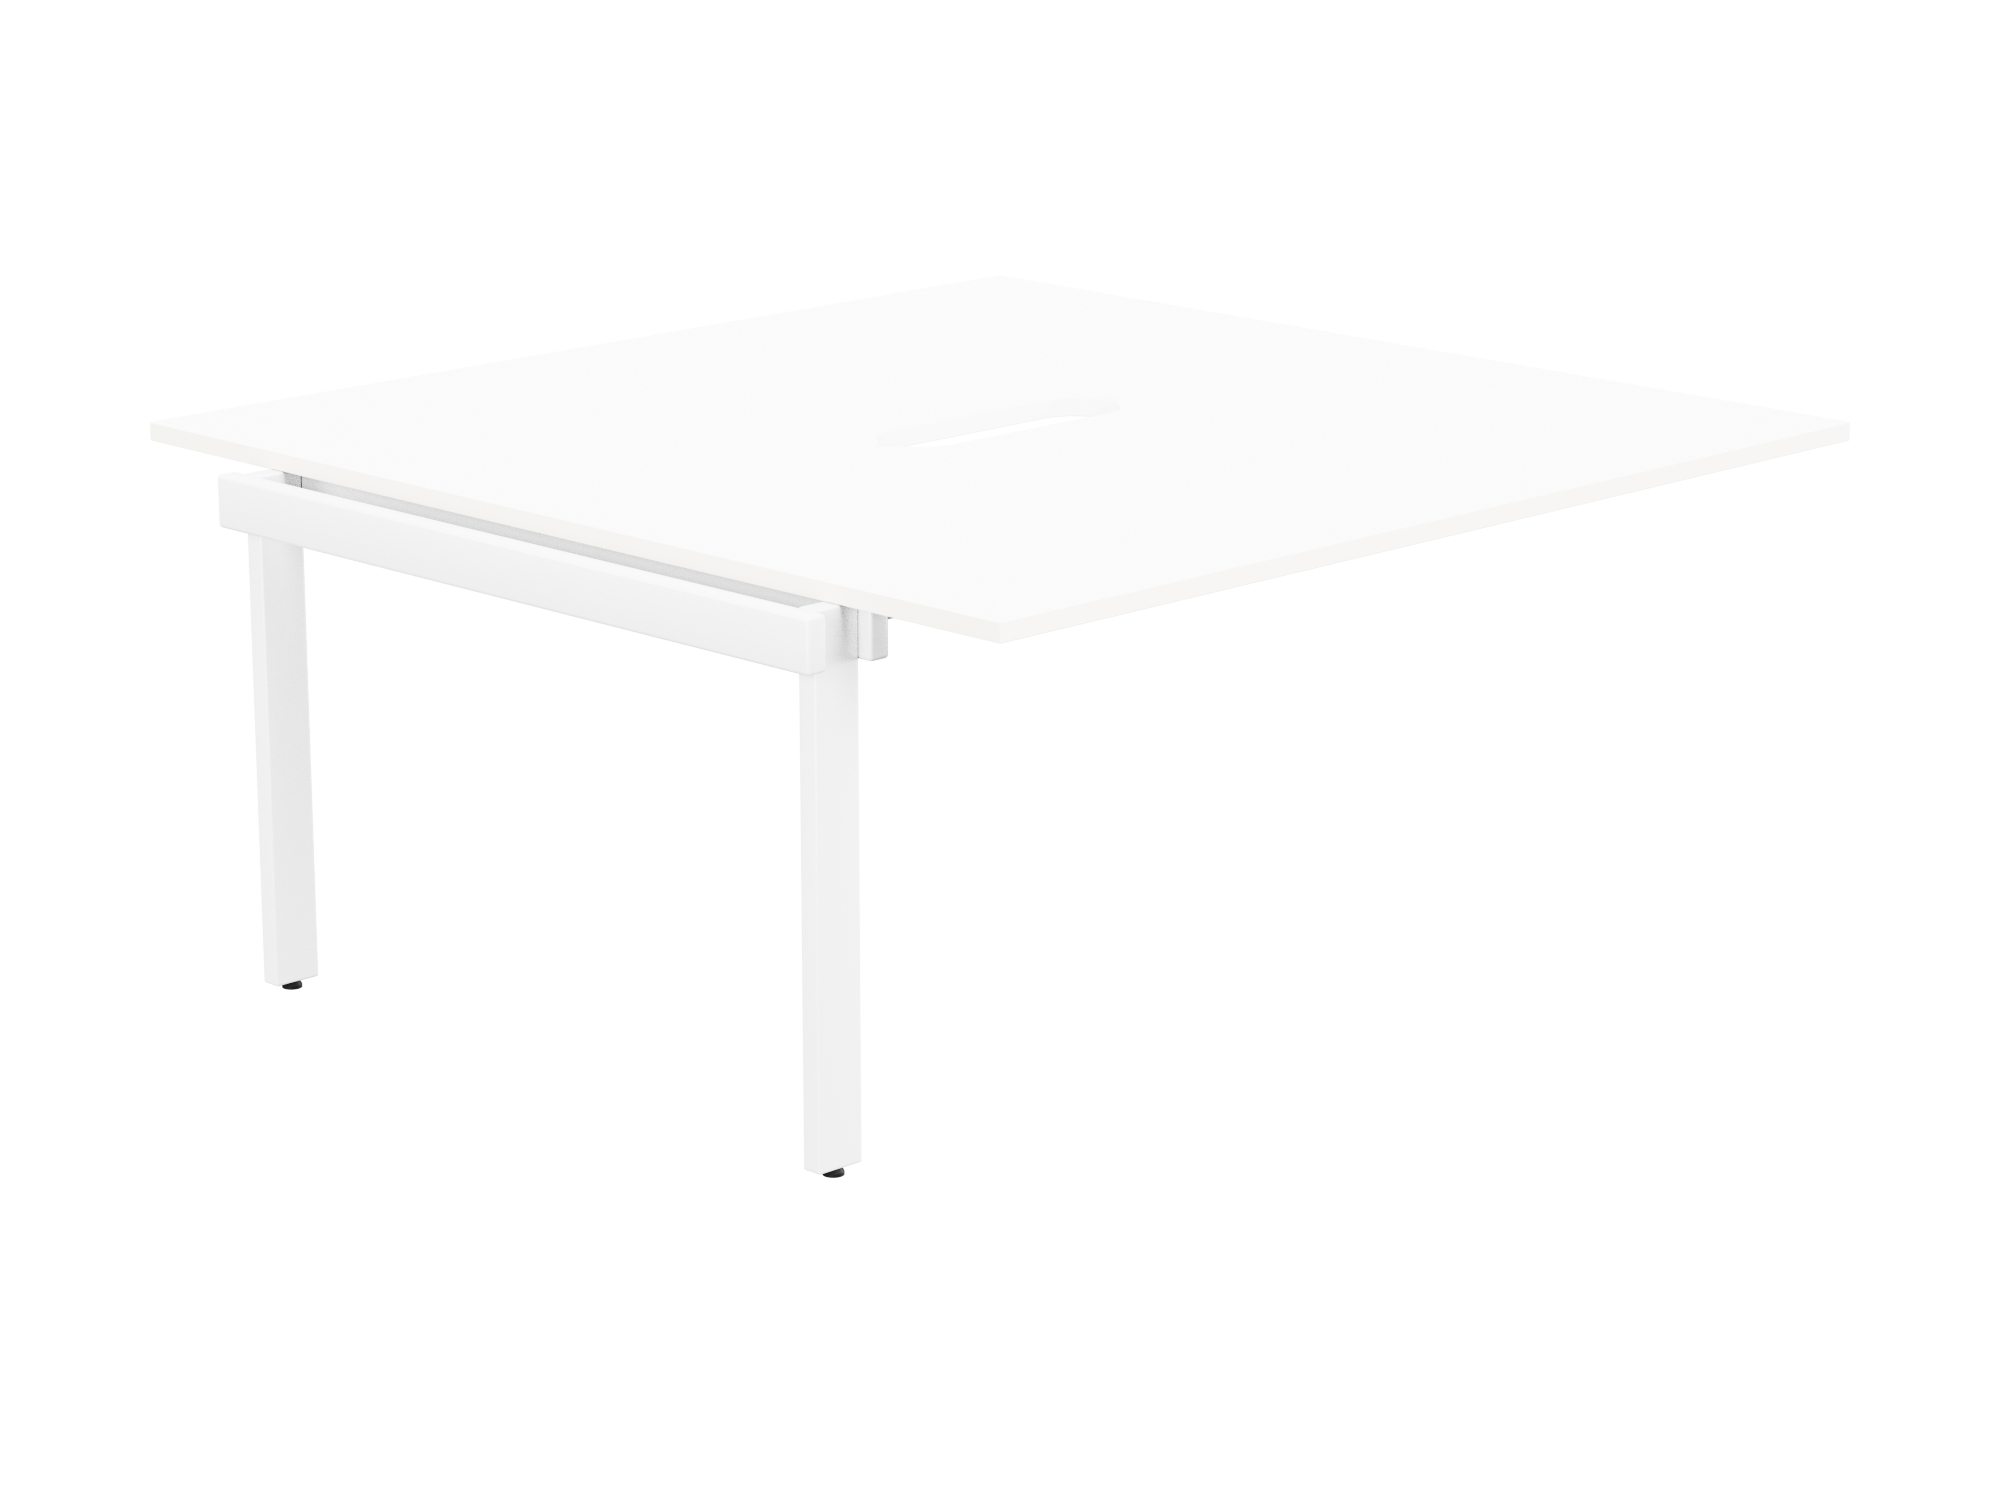 Switch 2 Person Bench Add-On Scallop Top 1600 x 800 - White Frame / White Top